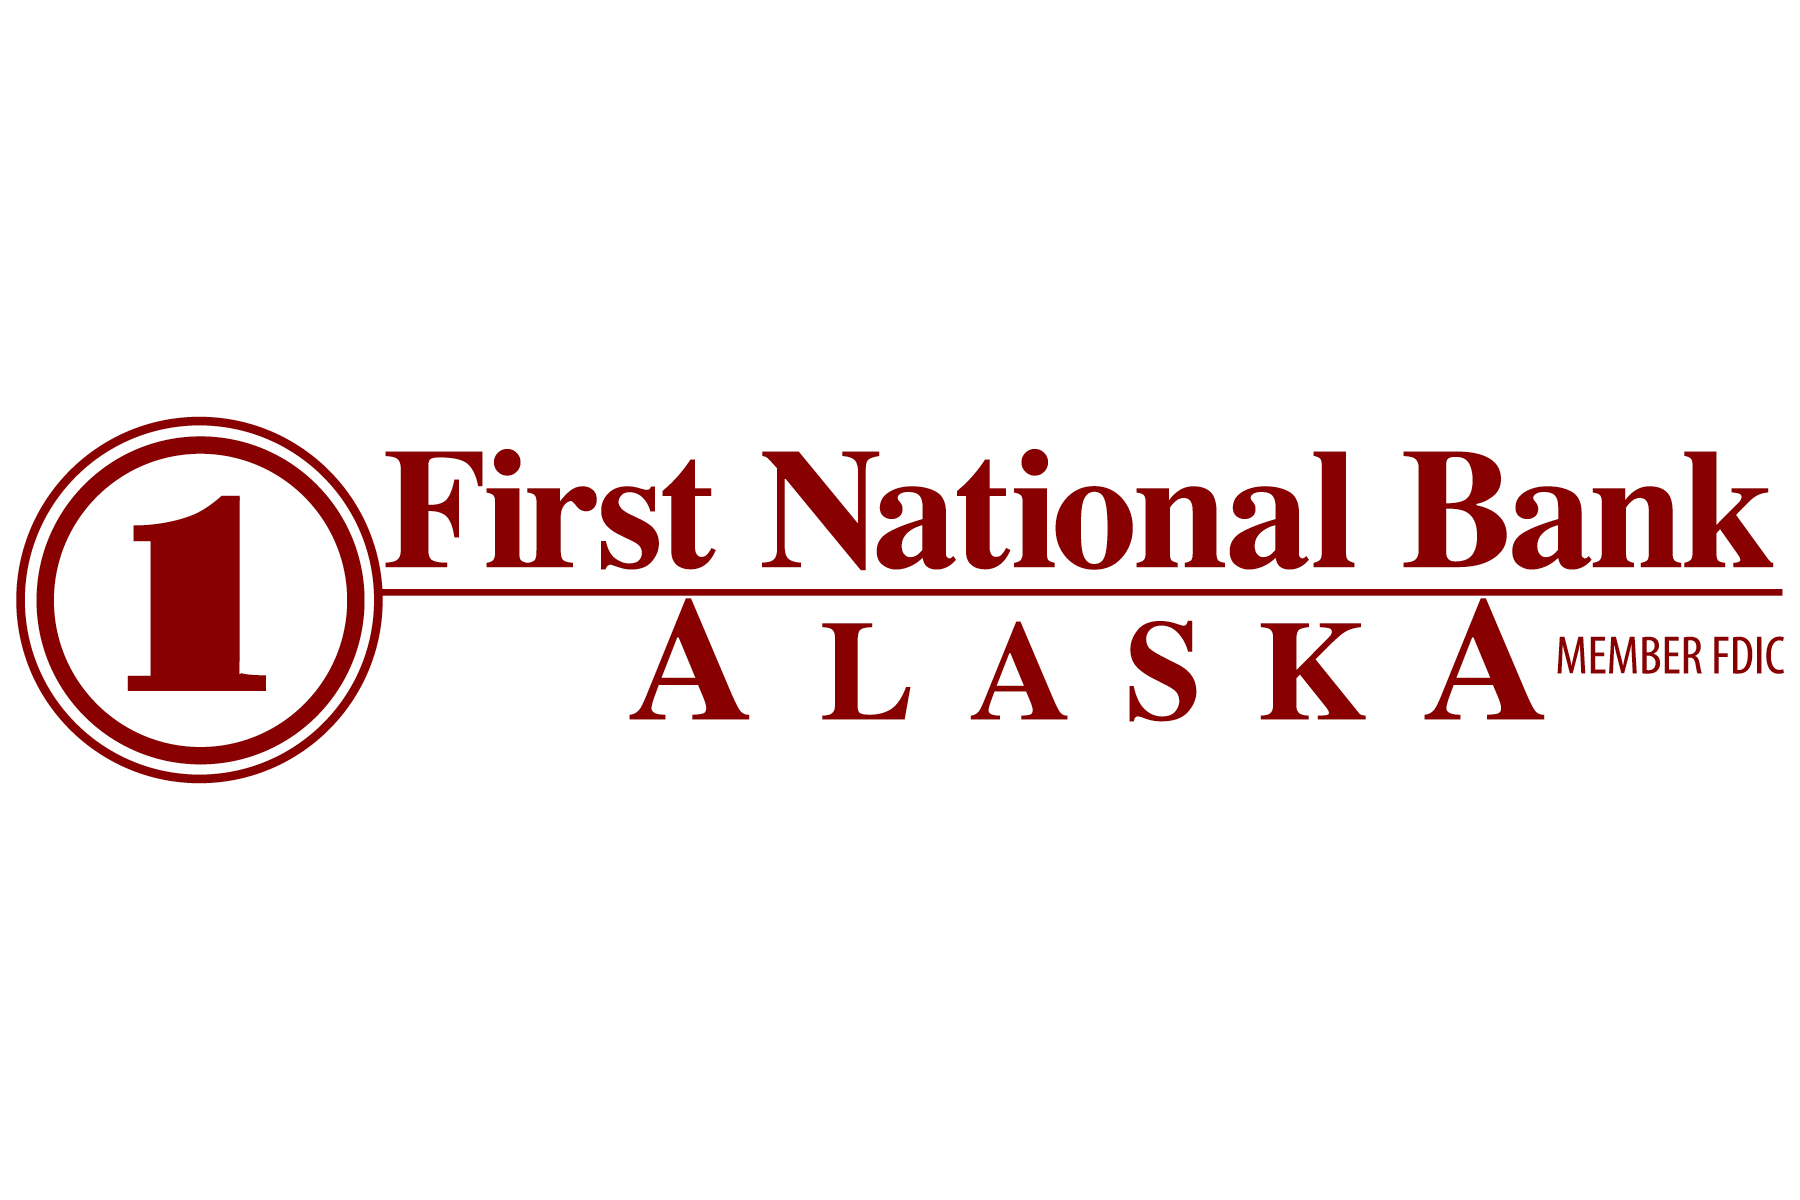 First National named Best Bank to Work For in the U.S for second consecutive year